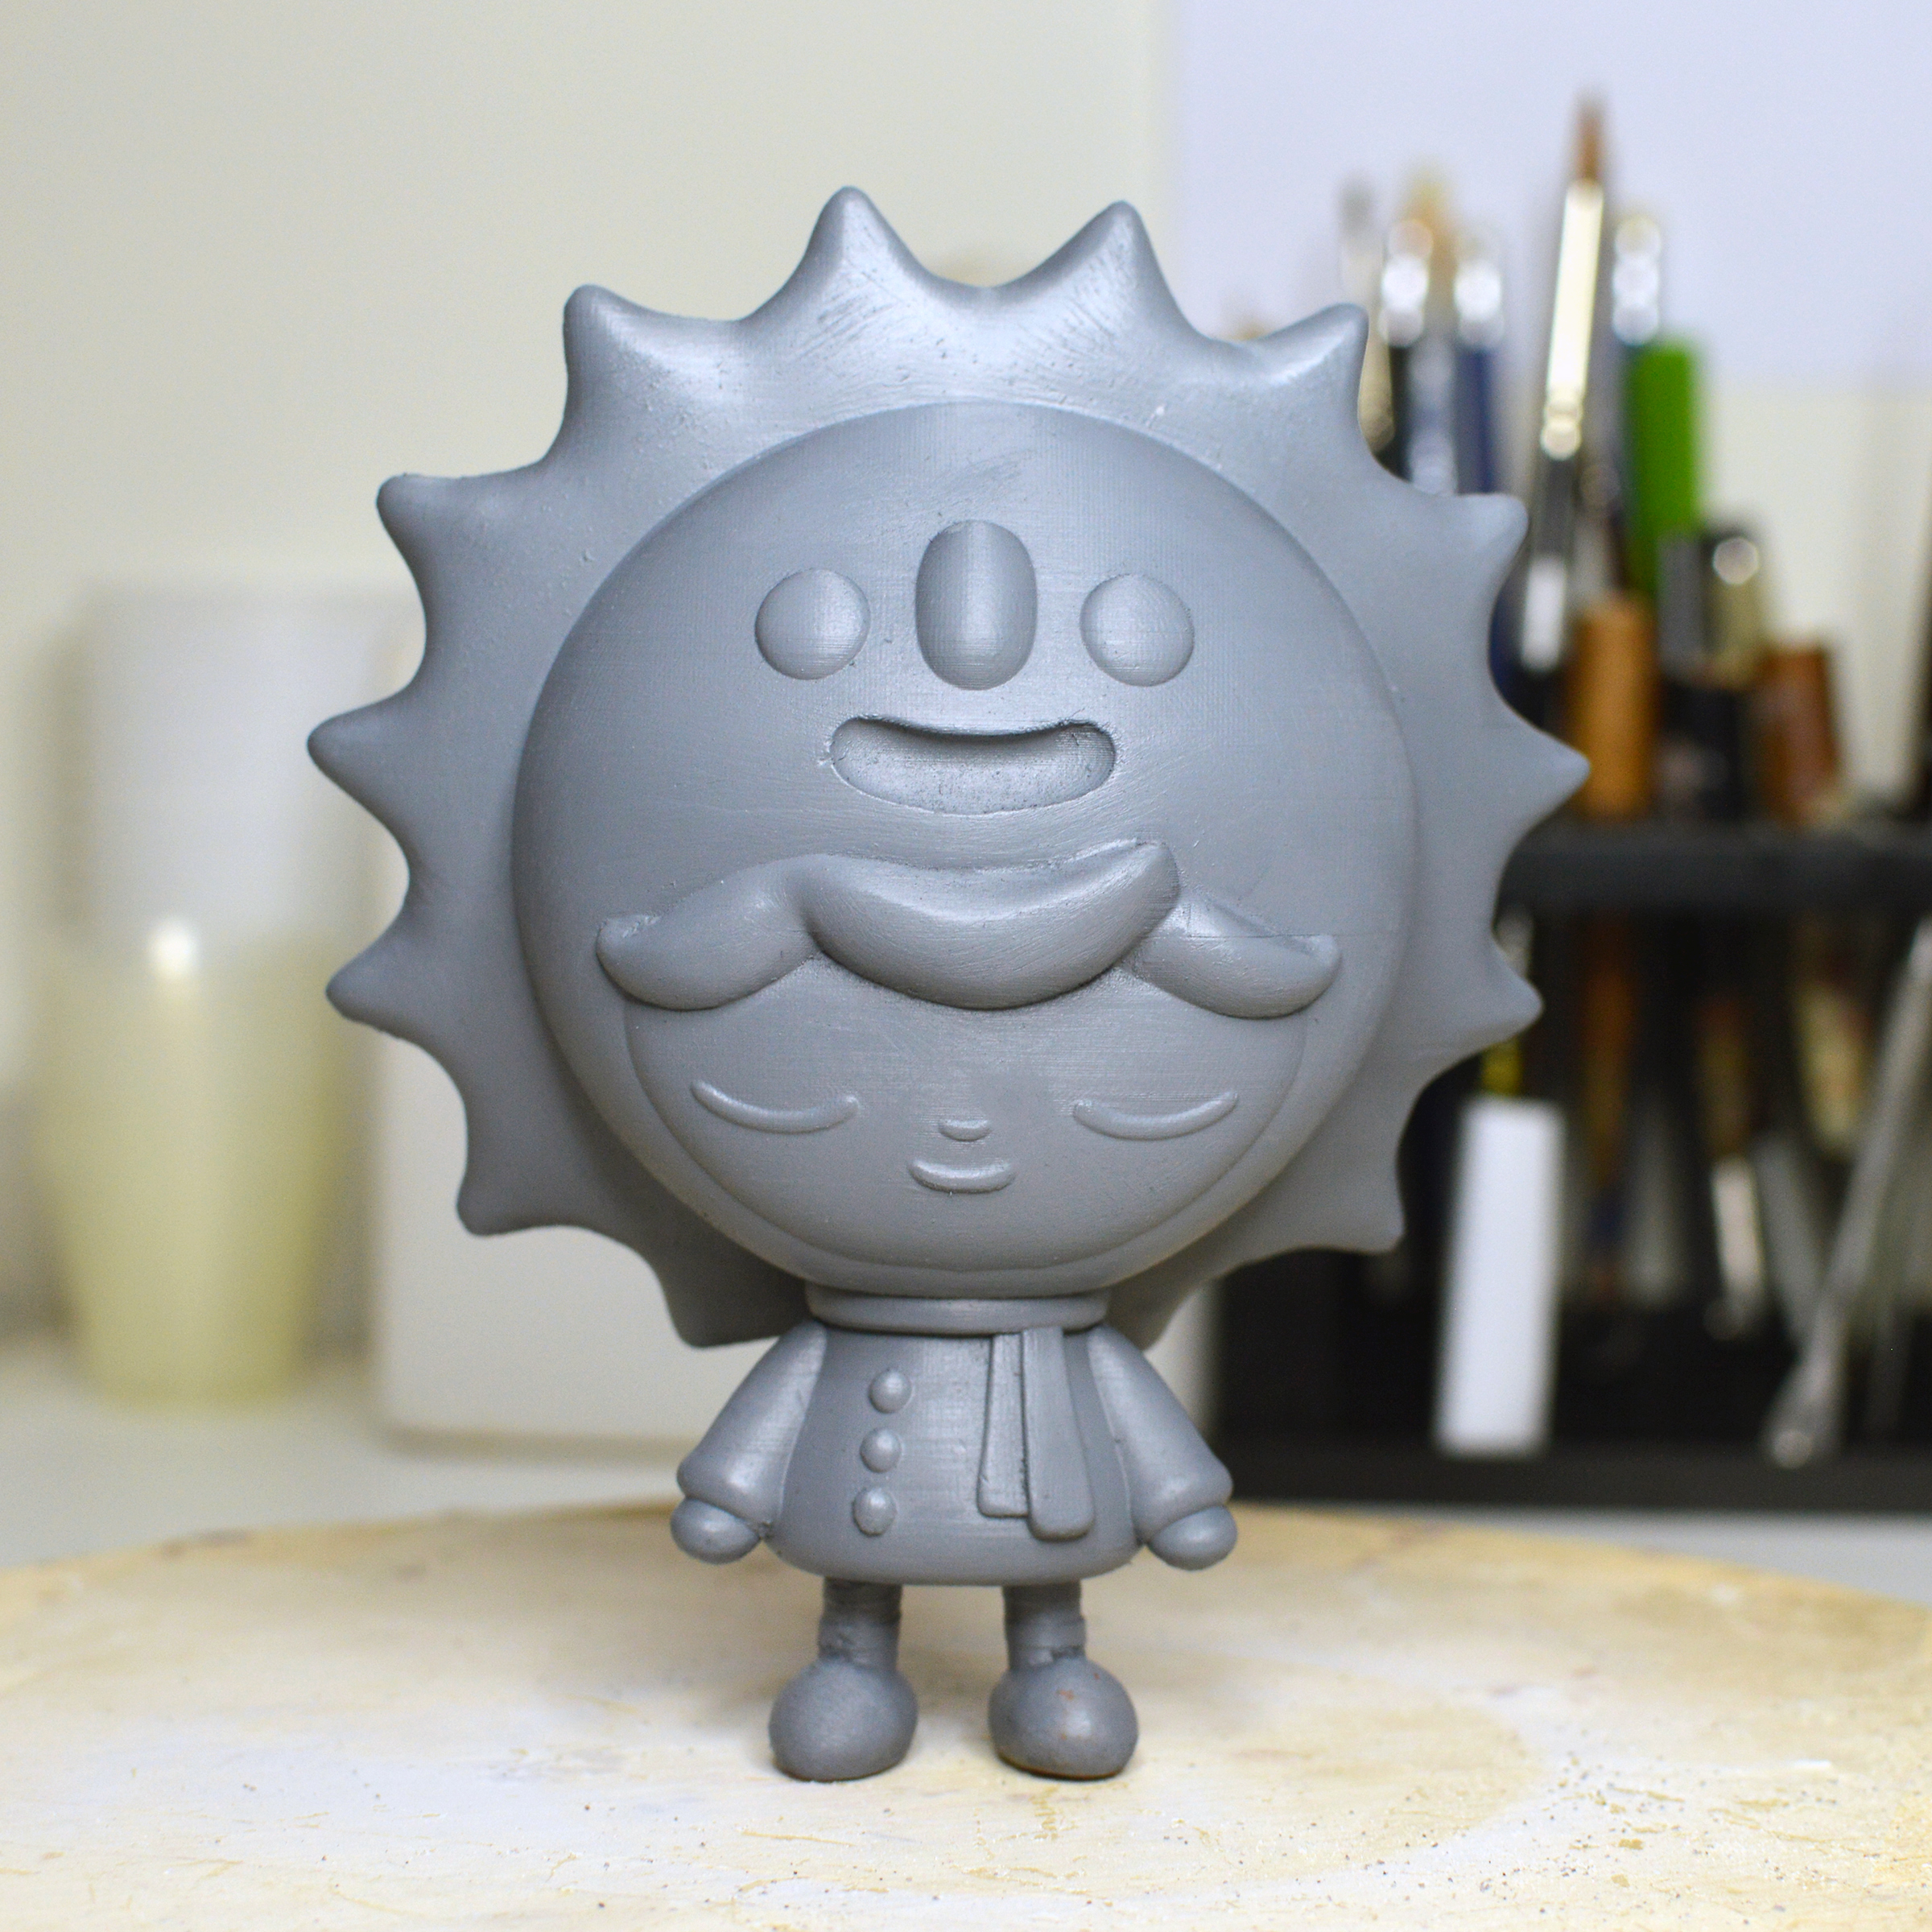 Test prototypes of Sunny